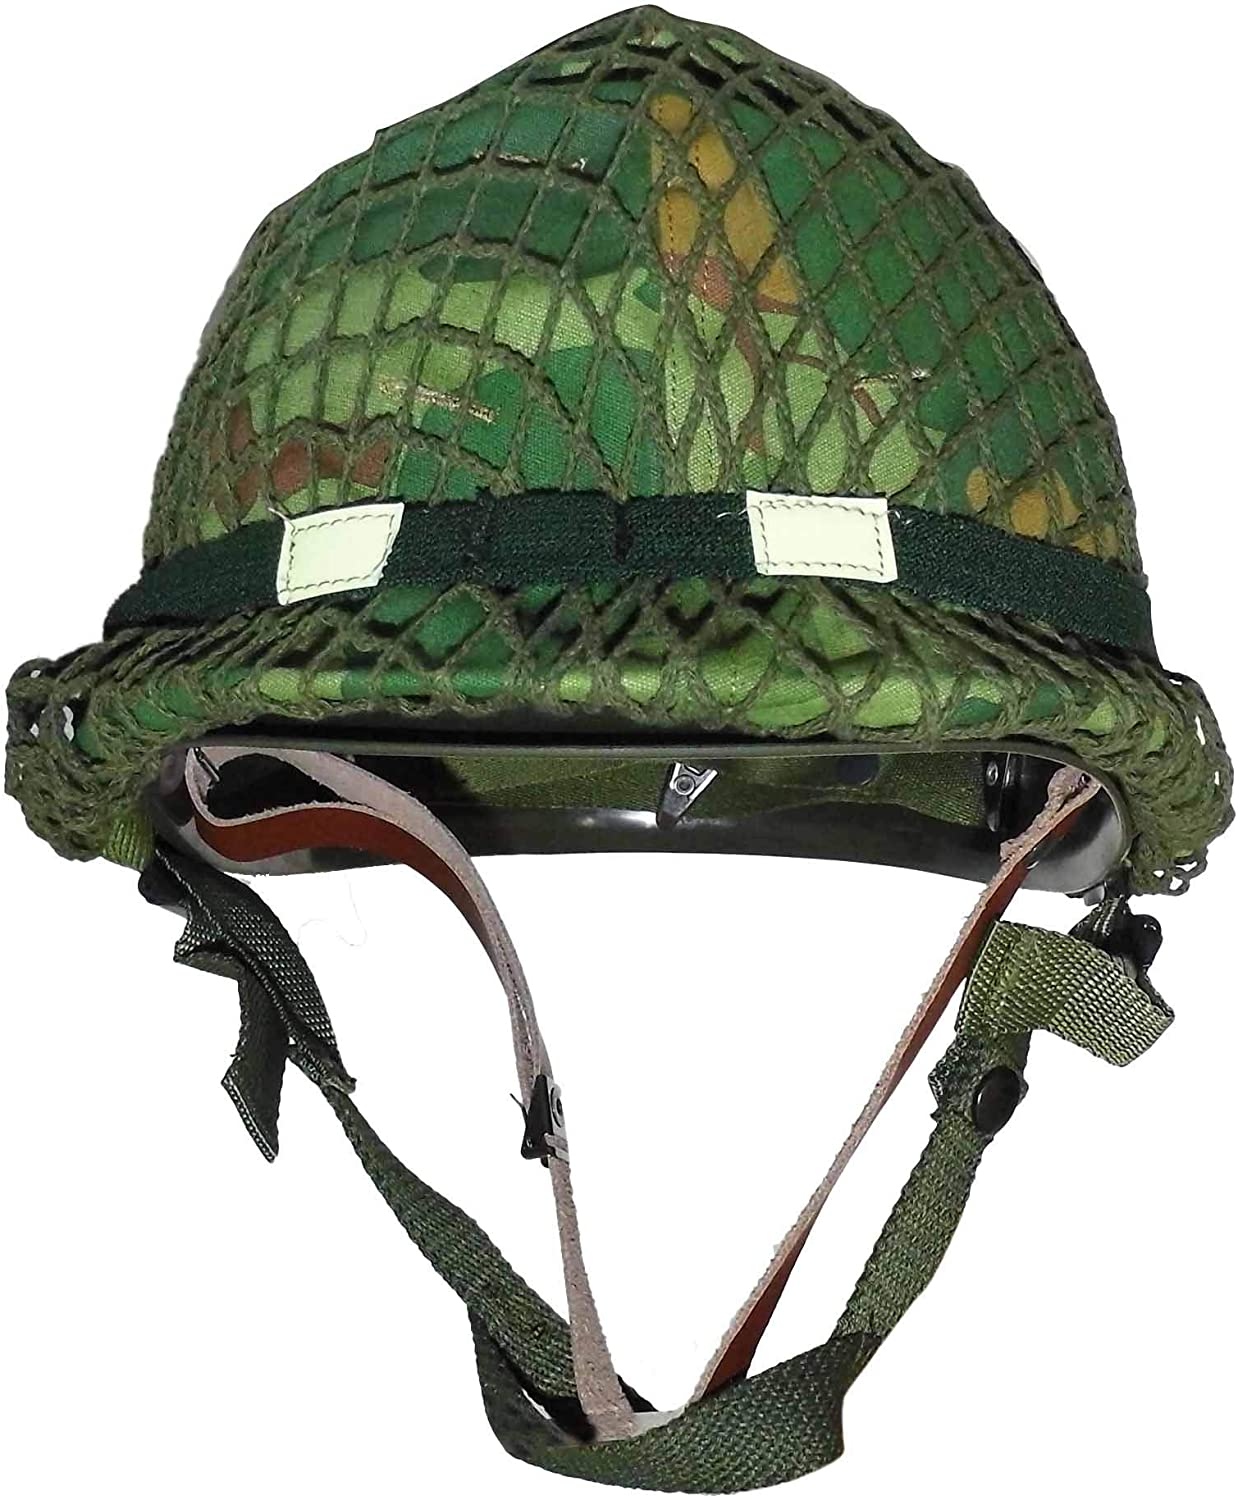 Reproduction 1959 Dated Vietnam War Era US M1 Combat Helmet with Mitchell Cover